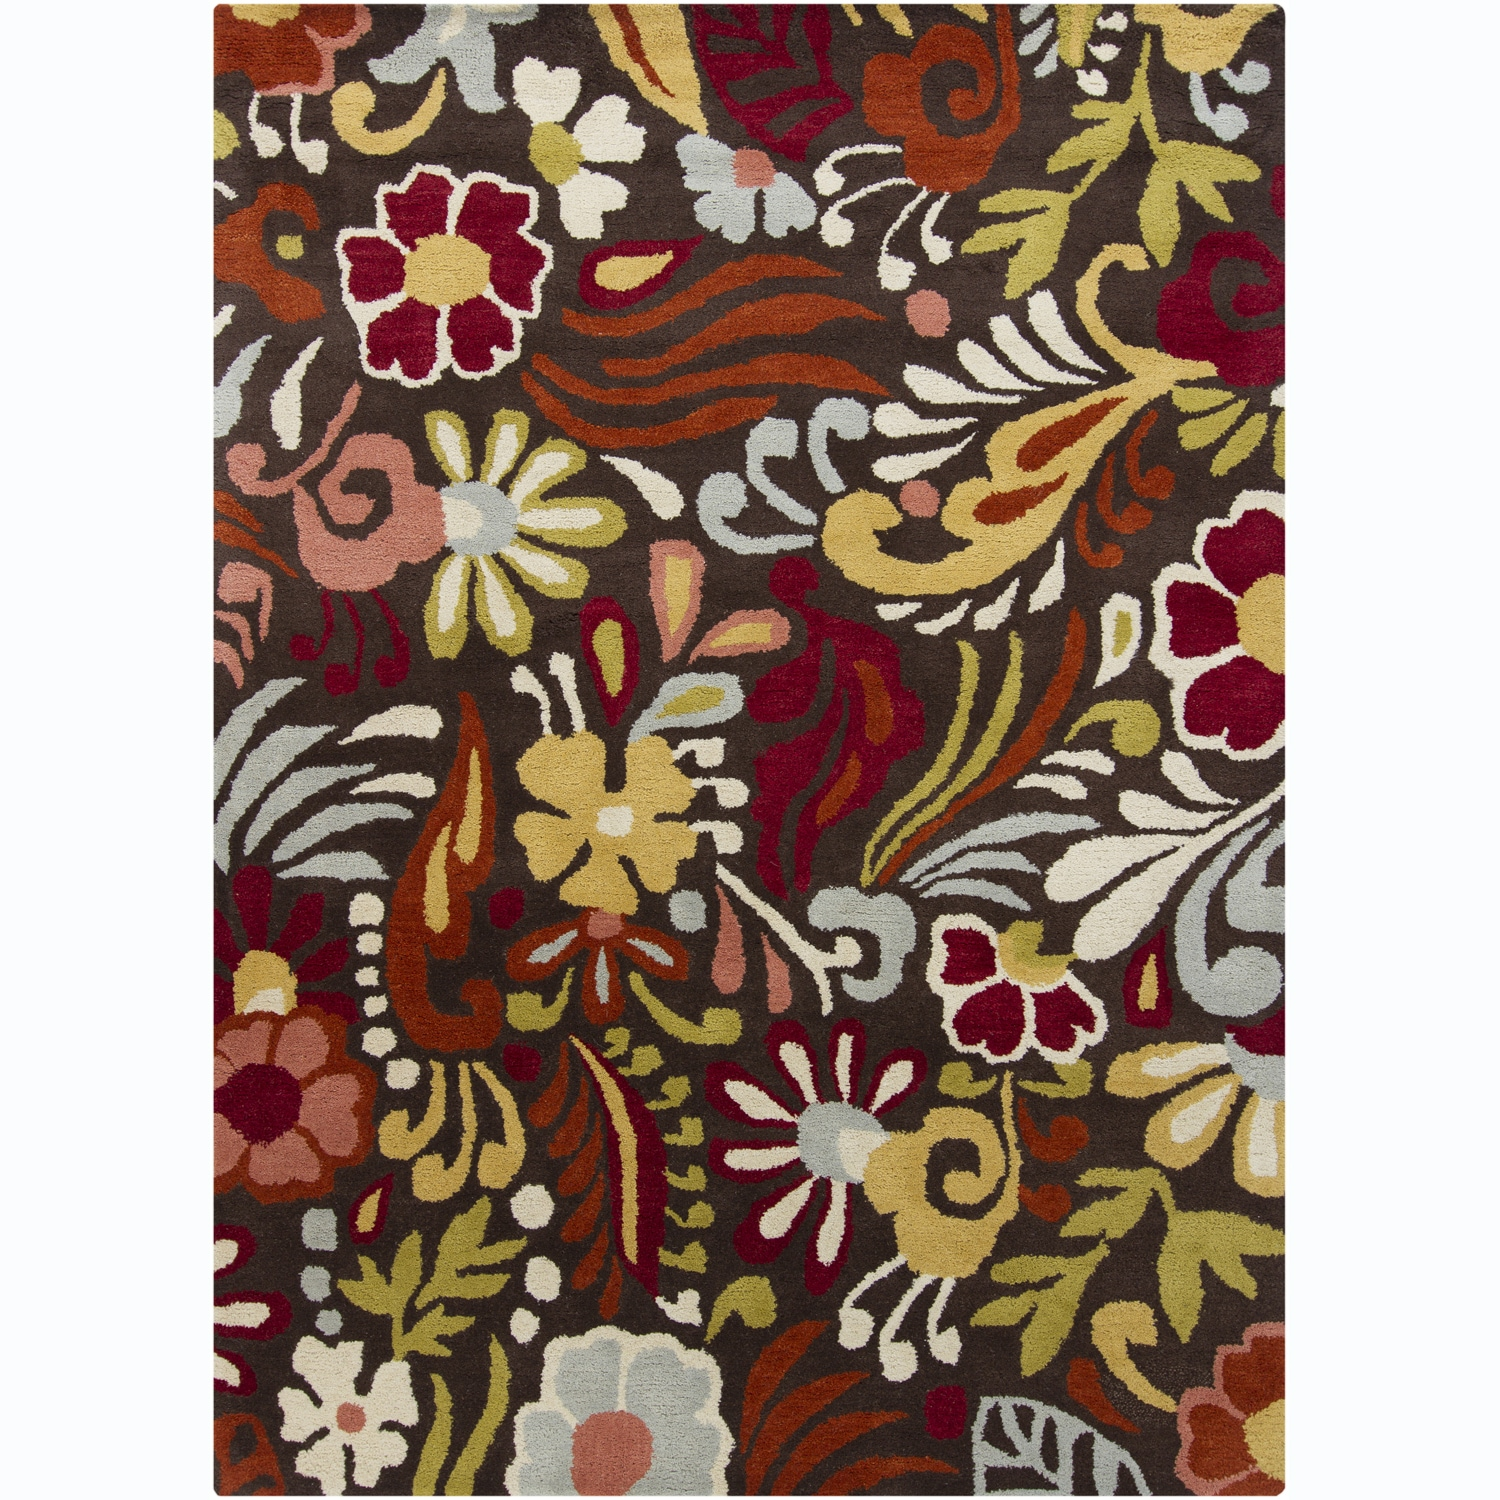 Hand-Tufted Mani Brown/Red Floral Wool Rug (7' x 10')